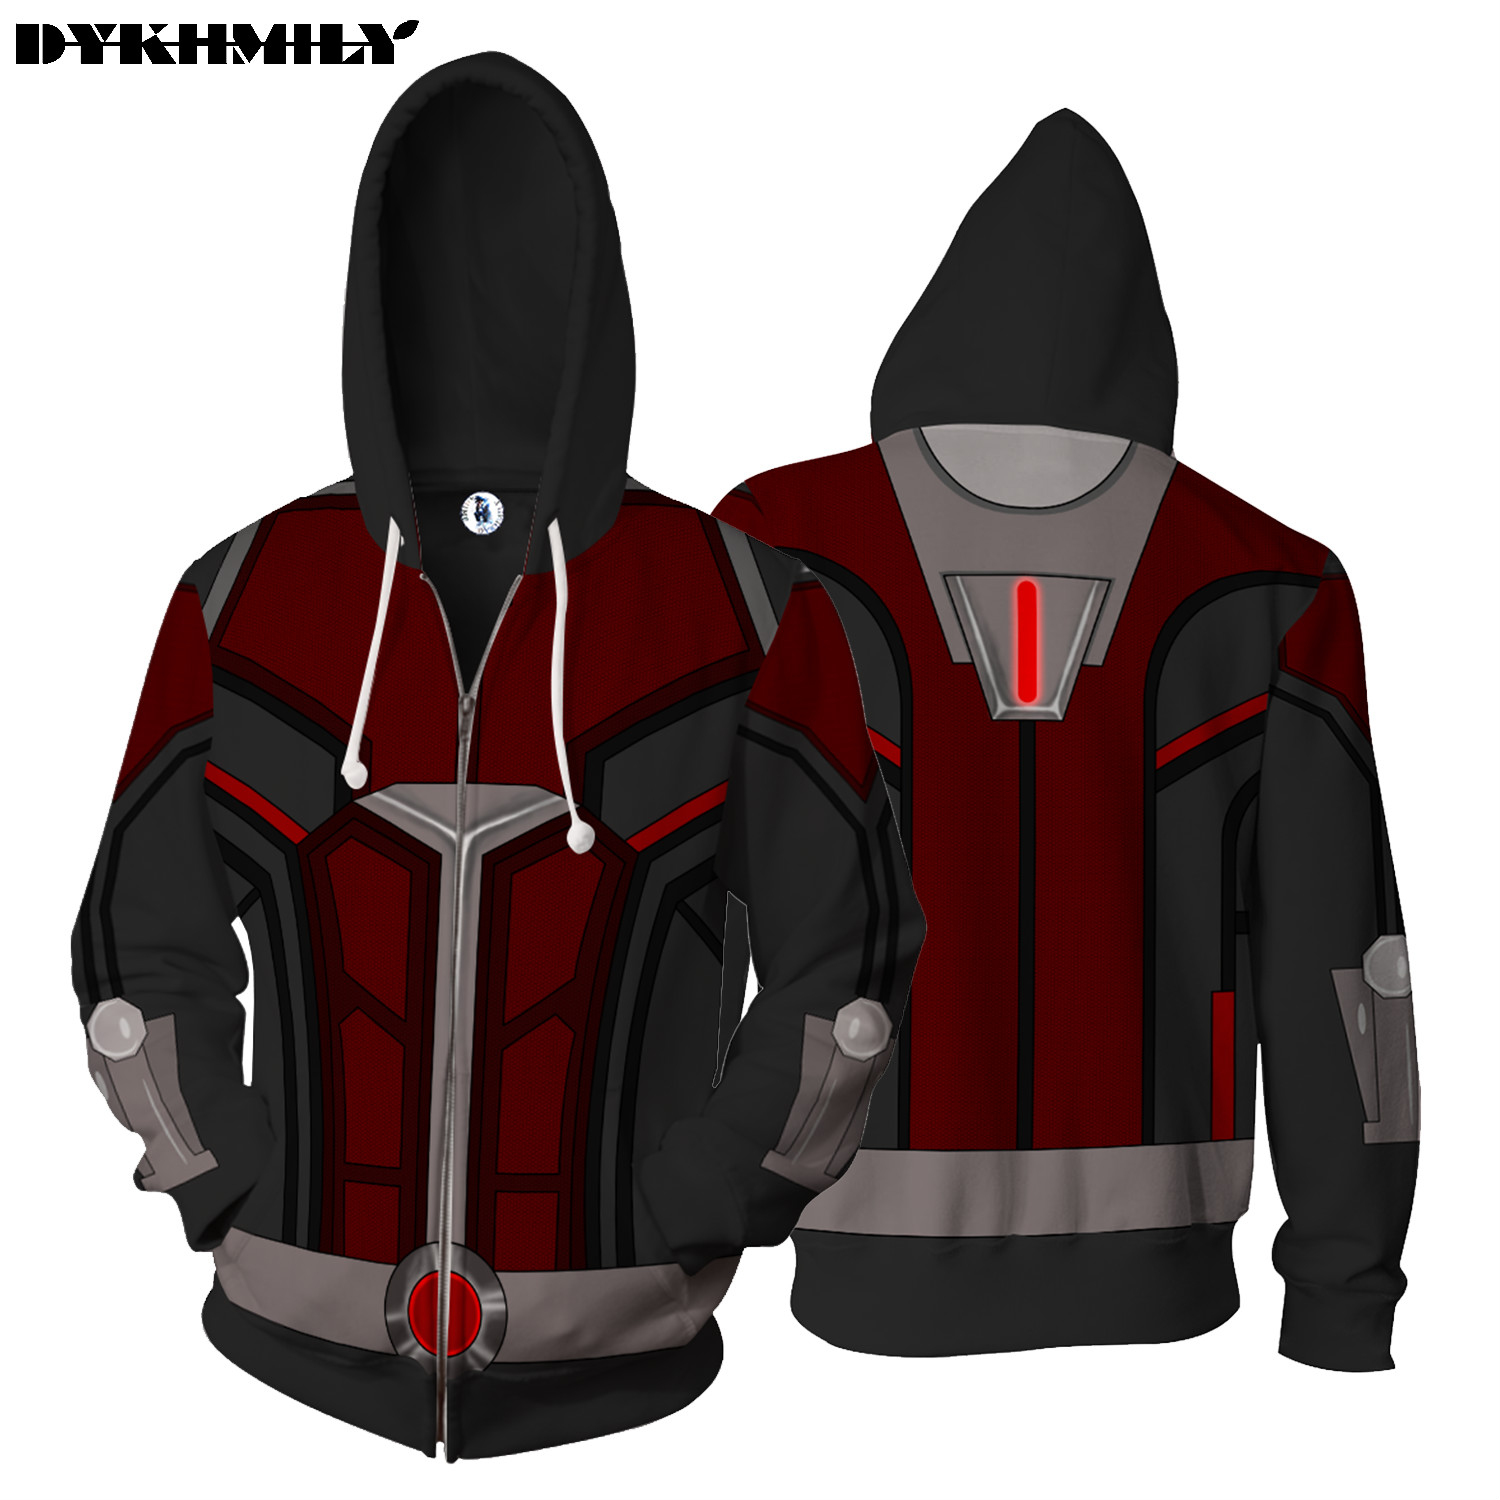 Ant man and the wasp Zipper Hoodies Jacket Hoodie